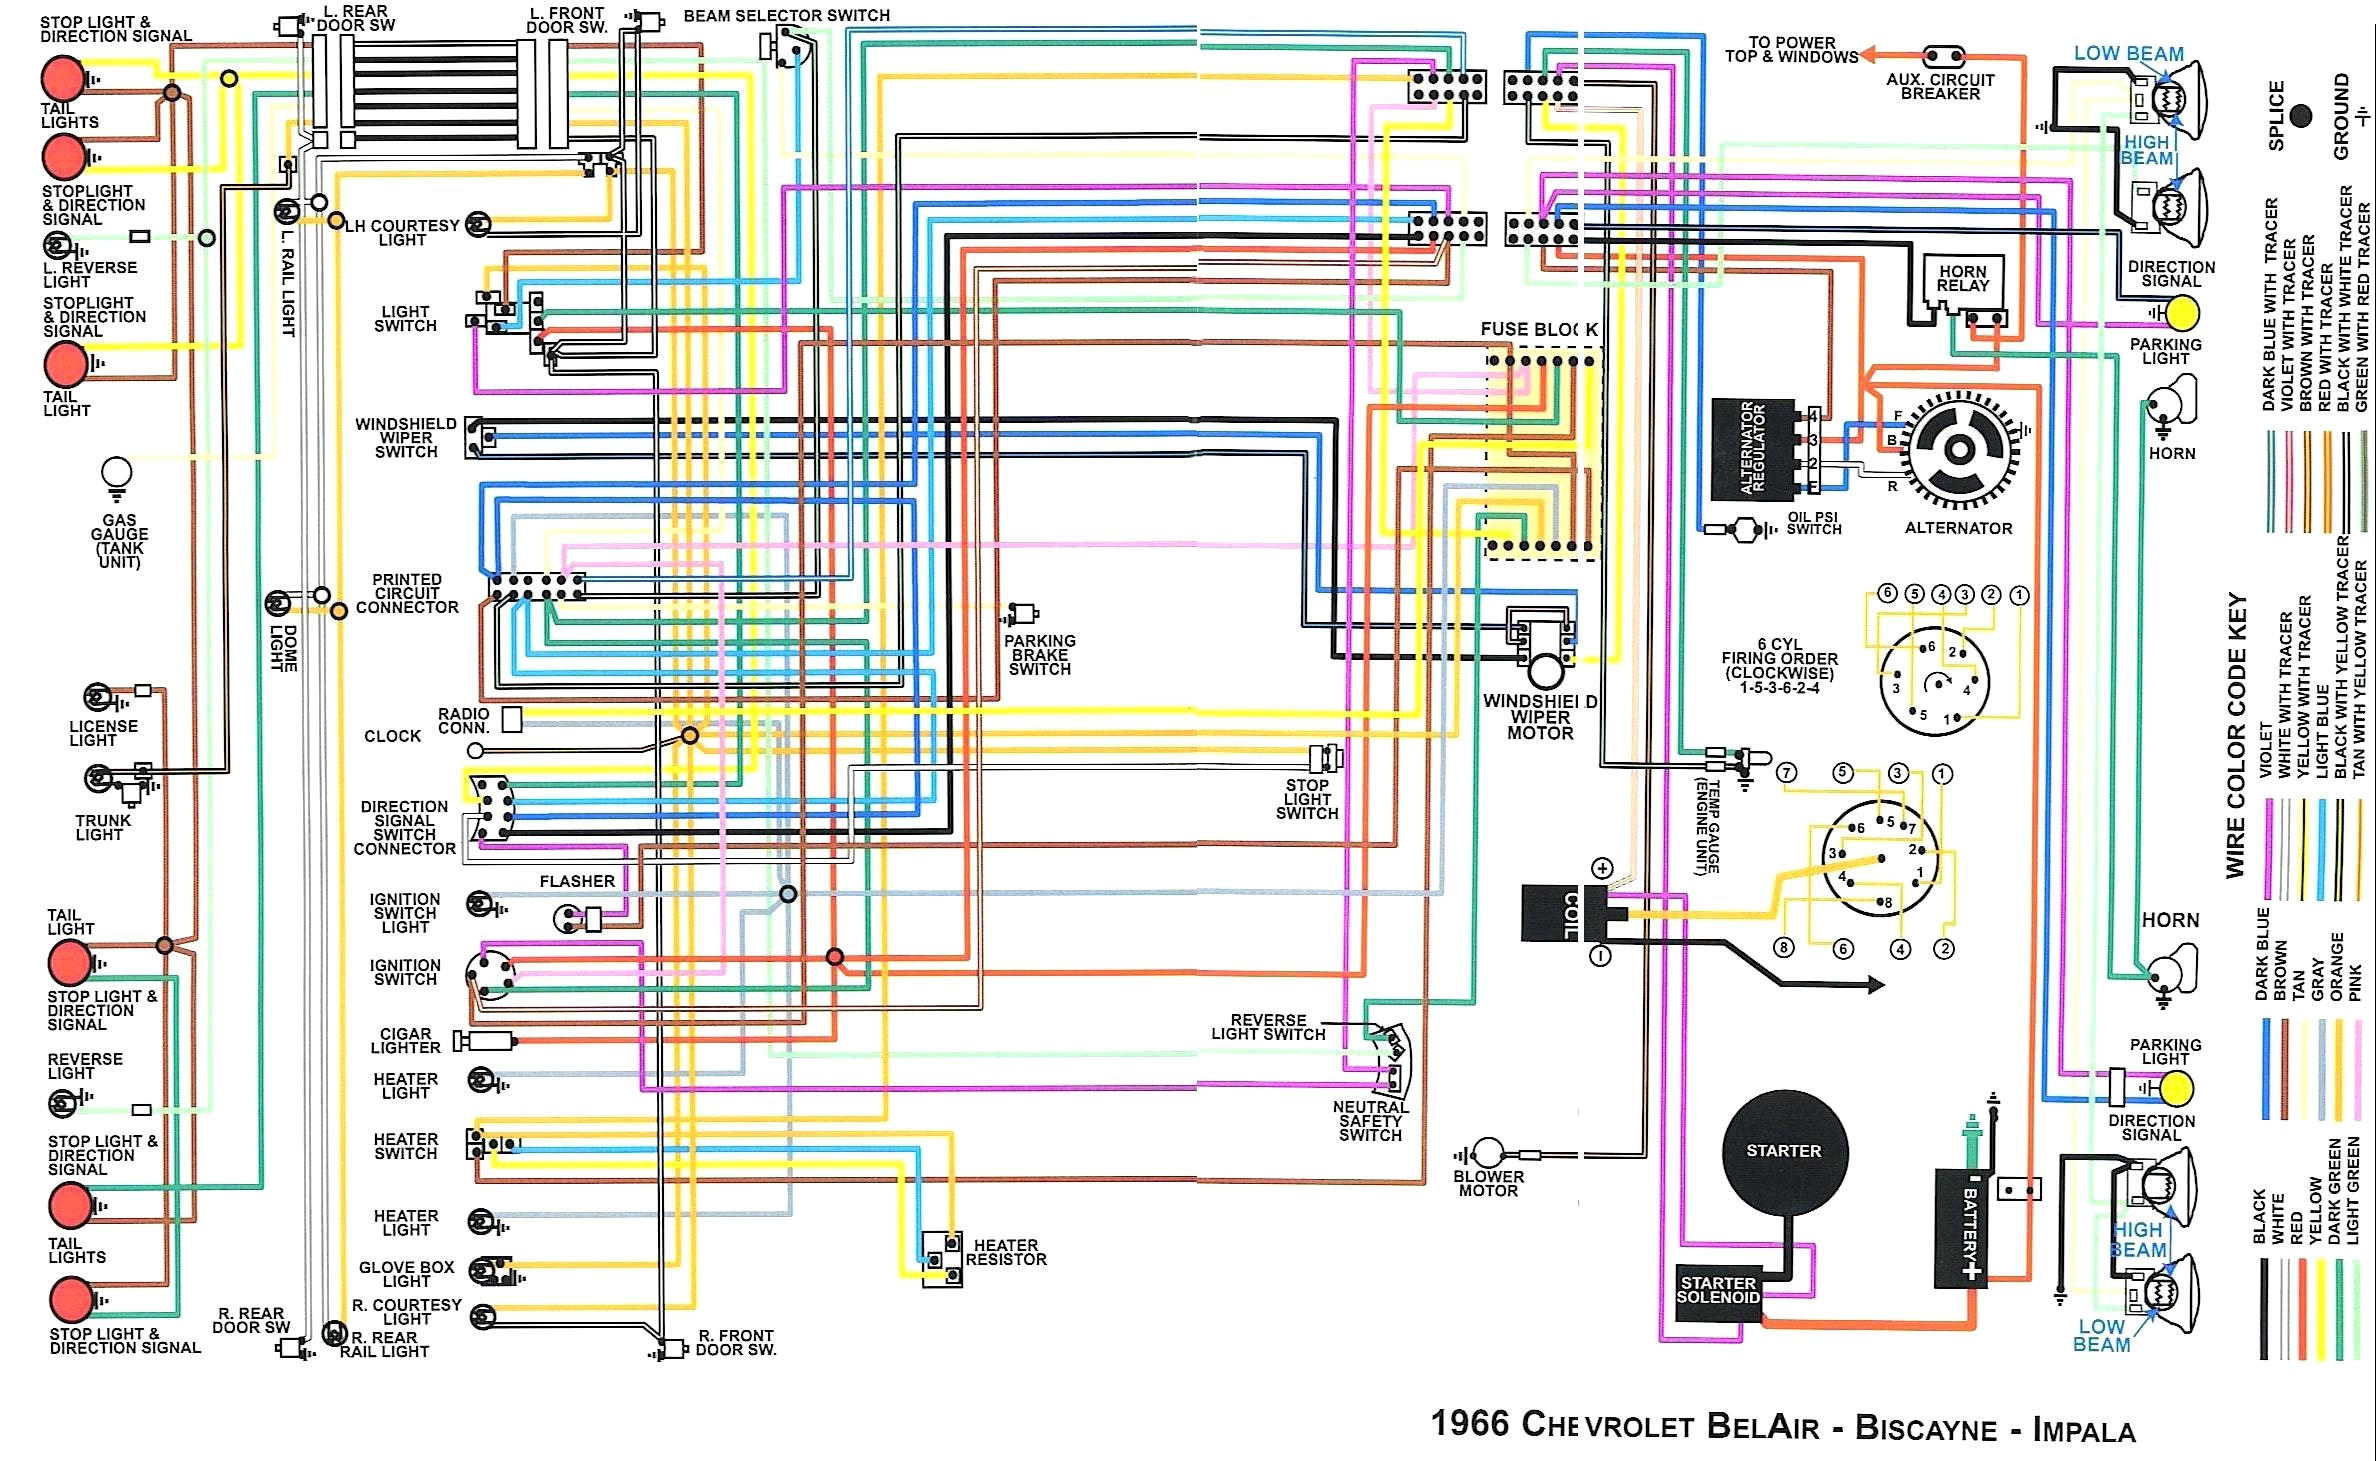 DIAGRAM] 67 Chevelle Wiring Diagram Picture Schematic FULL Version HD  Quality Picture Schematic - CORONADELVISTA.DATAJOB2013.FRcoronadelvista.datajob2013.fr